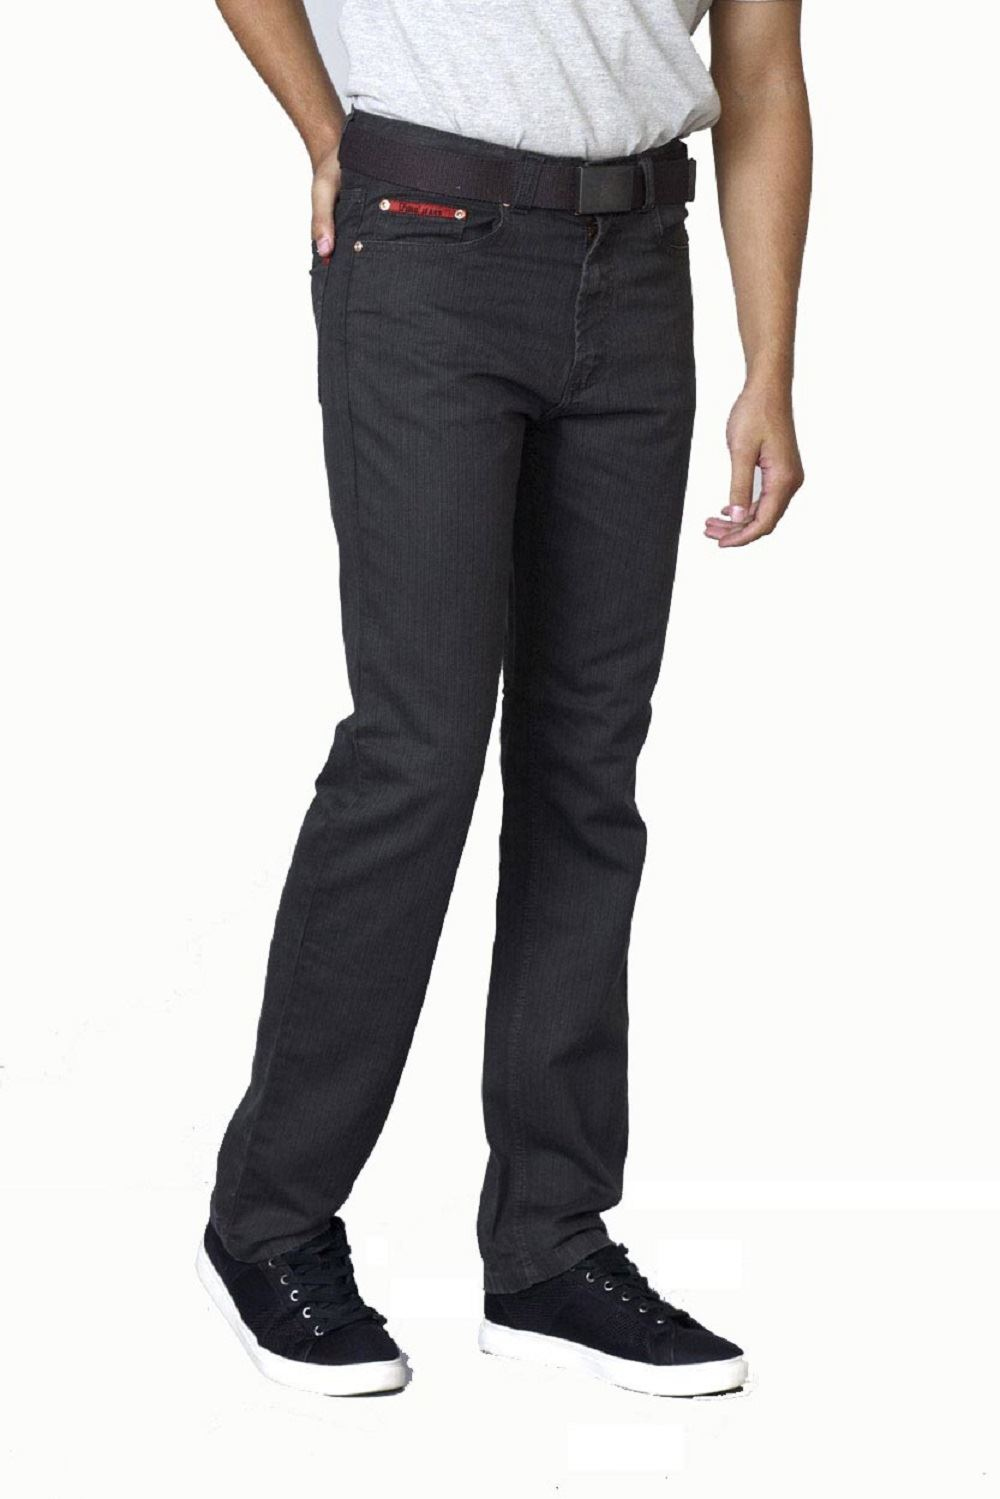 Duke-London-Mens-Big-Size-Bedford-Cord-Enzyme-Washed-Jeans-Canary-in-Charcoal thumbnail 11